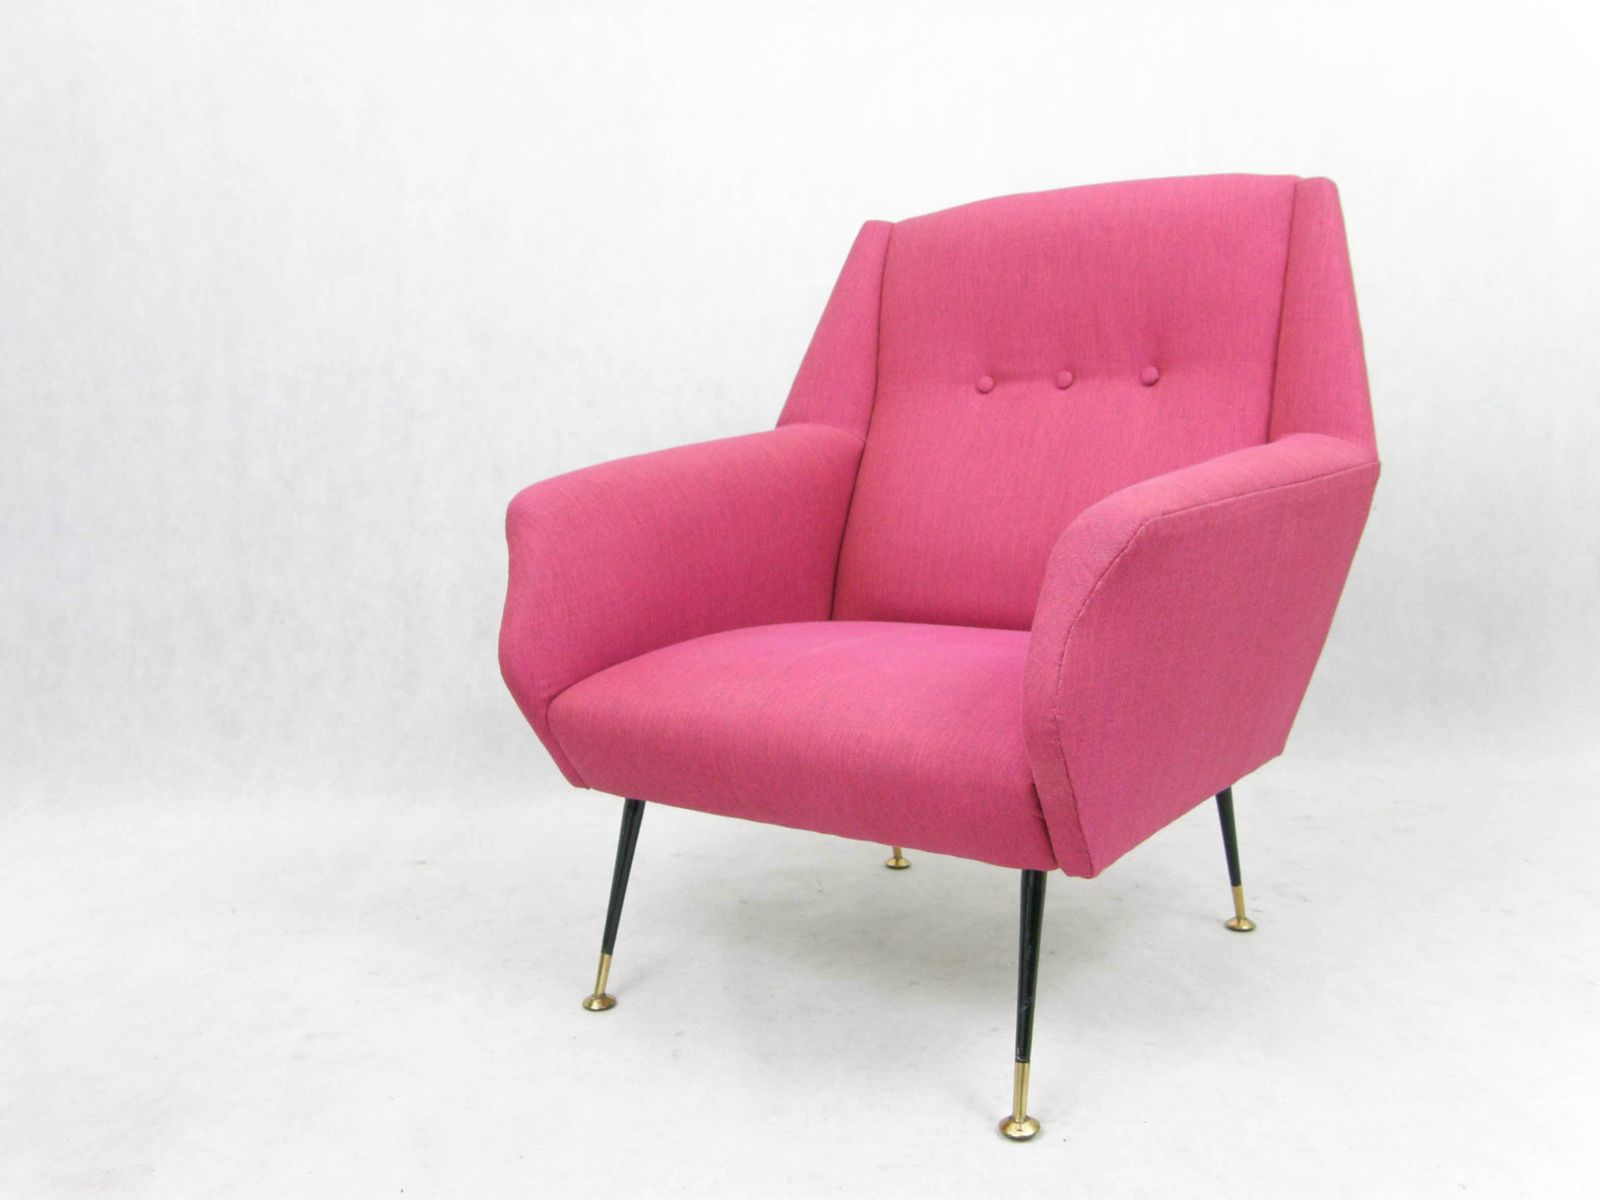 italienischer mid century sessel in pink 1950er bei pamono kaufen. Black Bedroom Furniture Sets. Home Design Ideas